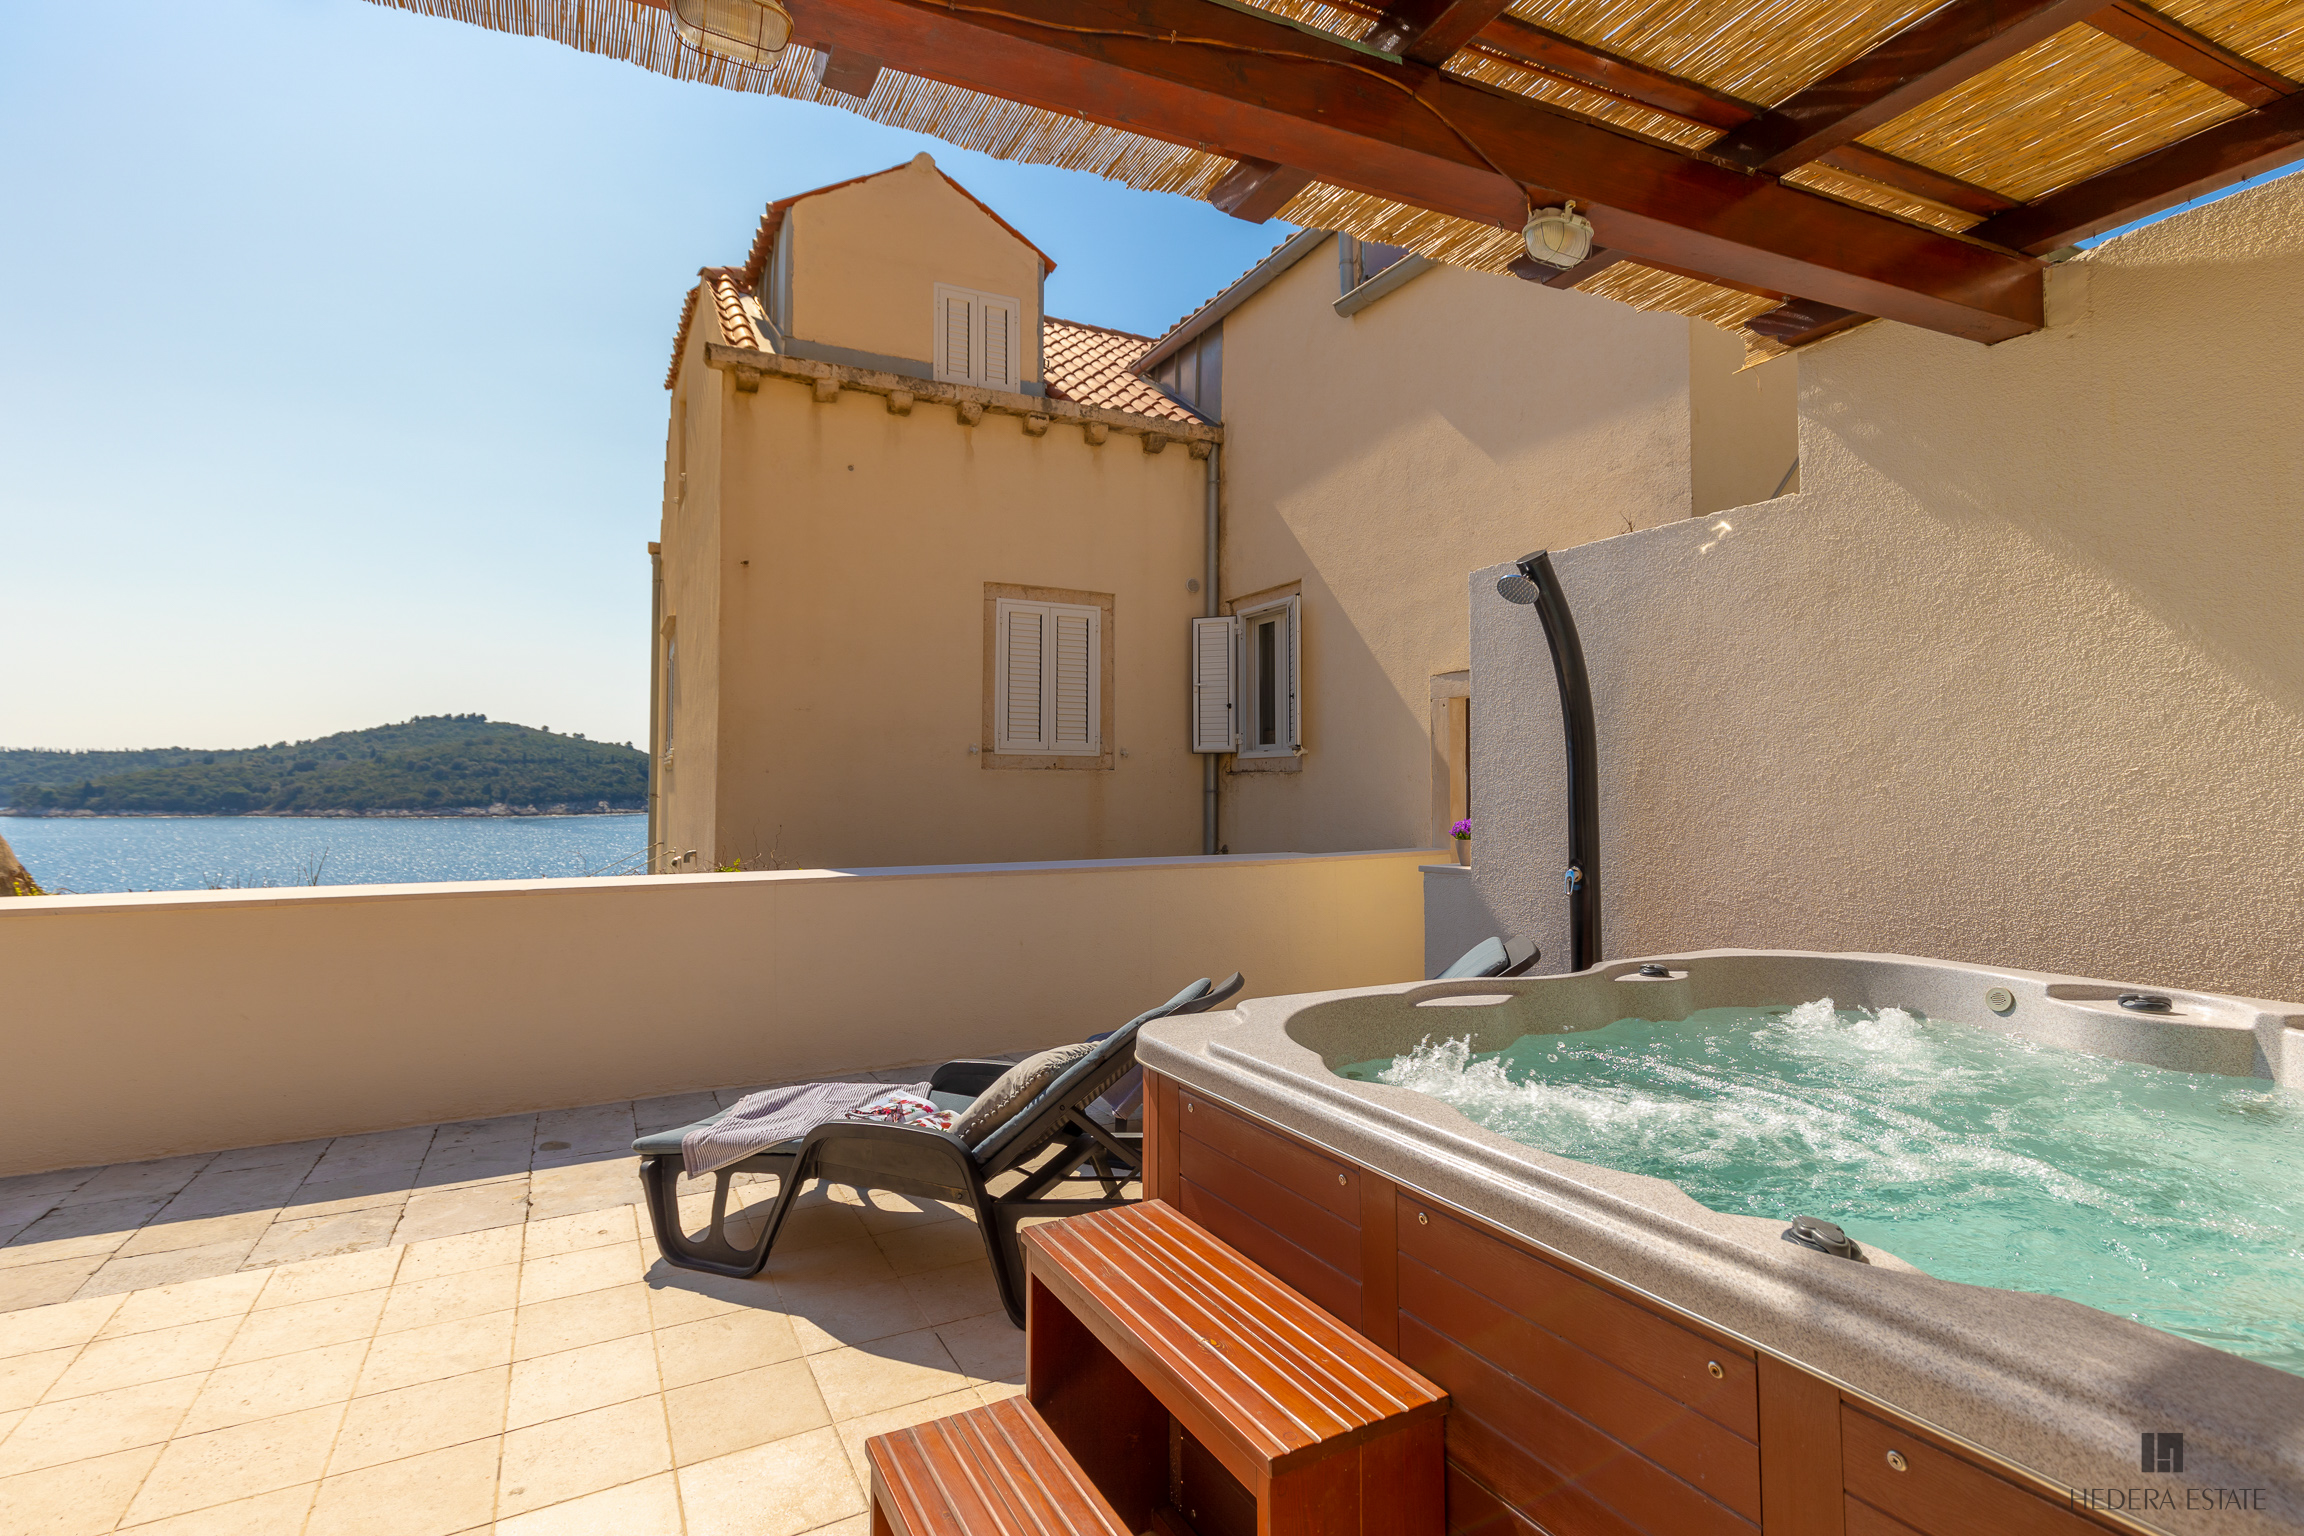 <p>Sleeps 6 (+2)<br />3 bedrooms<br />3.5 bathrooms<br />Kitchen, dining area and living room<br />Lounge room with a sofa bed<br />1 terrace with jacuzzi and sea view<br />Distance to the Old Town: 2 minutes walk</p>